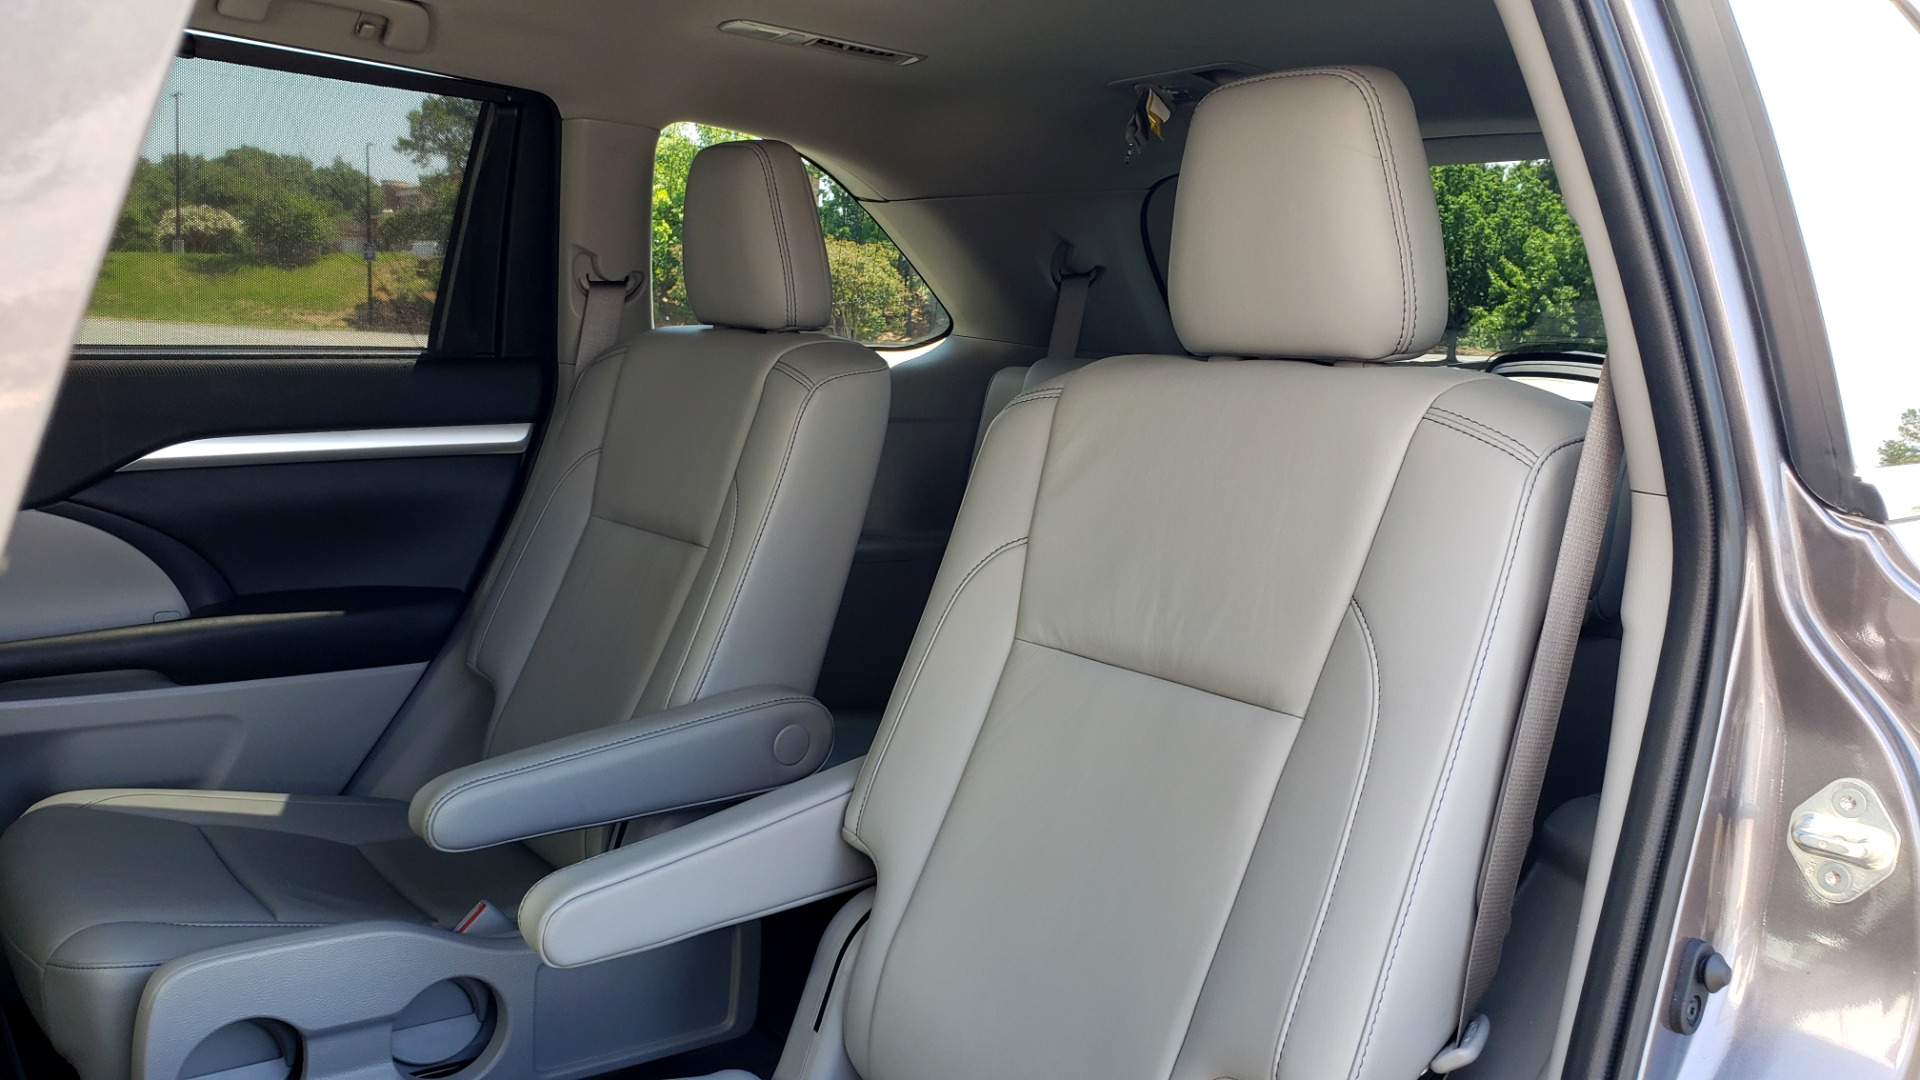 Used 2019 Toyota HIGHLANDER XLE / 3.5L V6 / AWD / LEATHER / 8-SPD AUTO / 1-OWNER for sale $37,500 at Formula Imports in Charlotte NC 28227 62